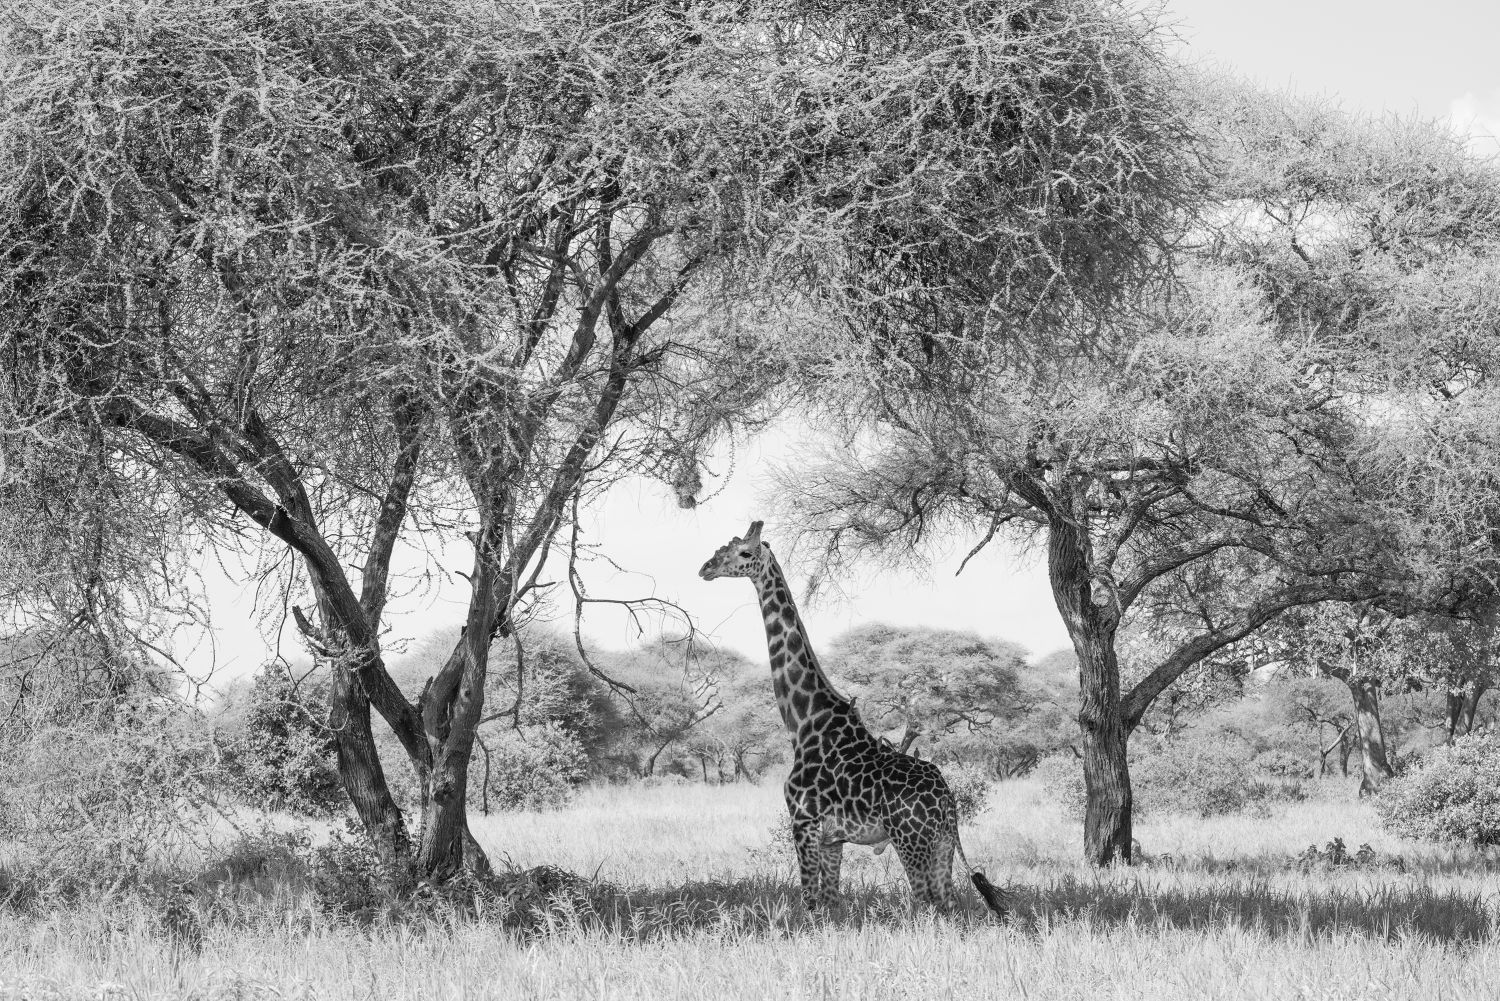 Giraffe_under_trees_3000.jpg